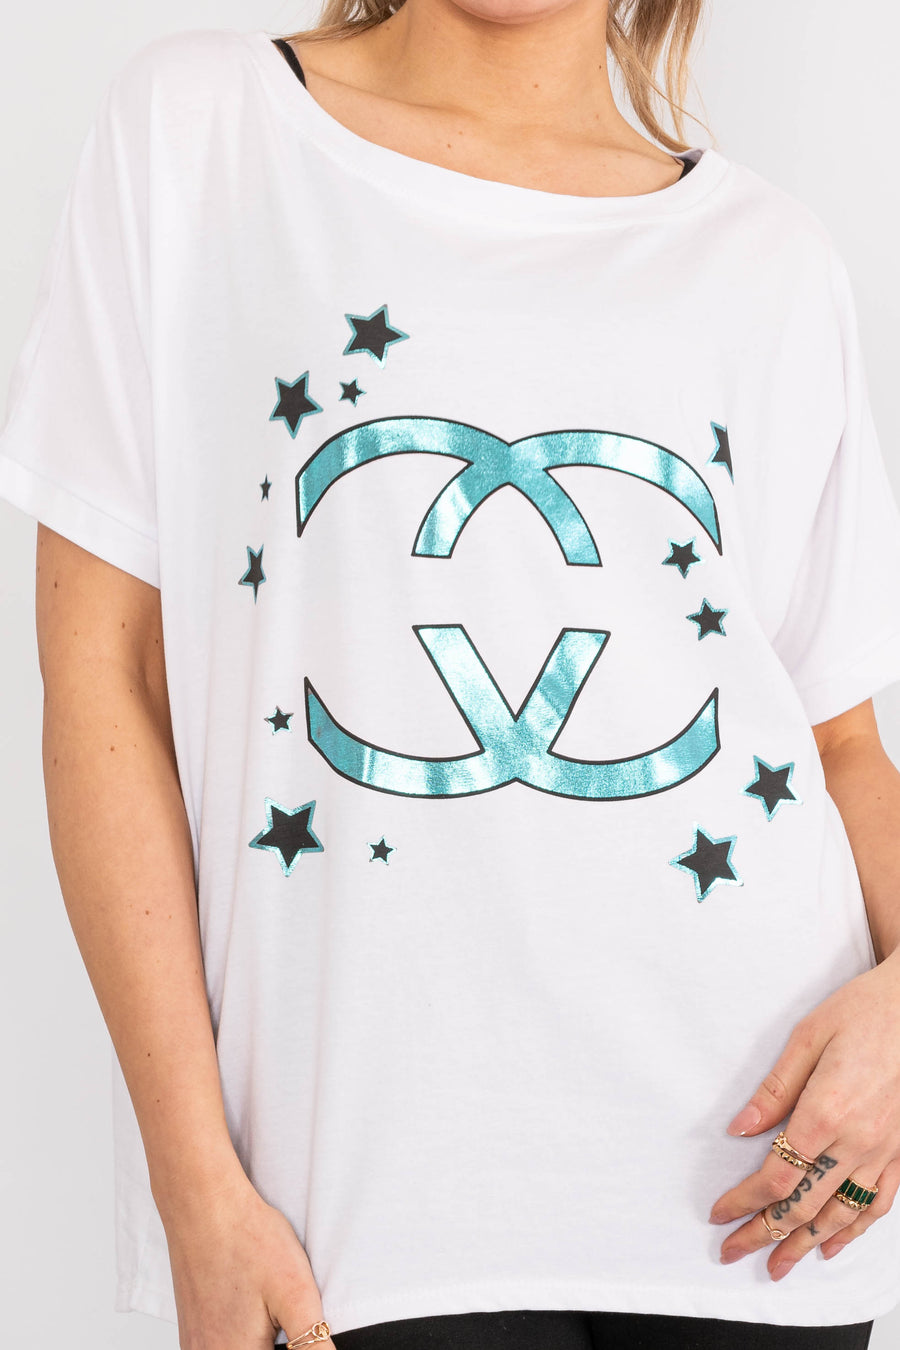 Short sleeved T-Shirt with 'CC' design.